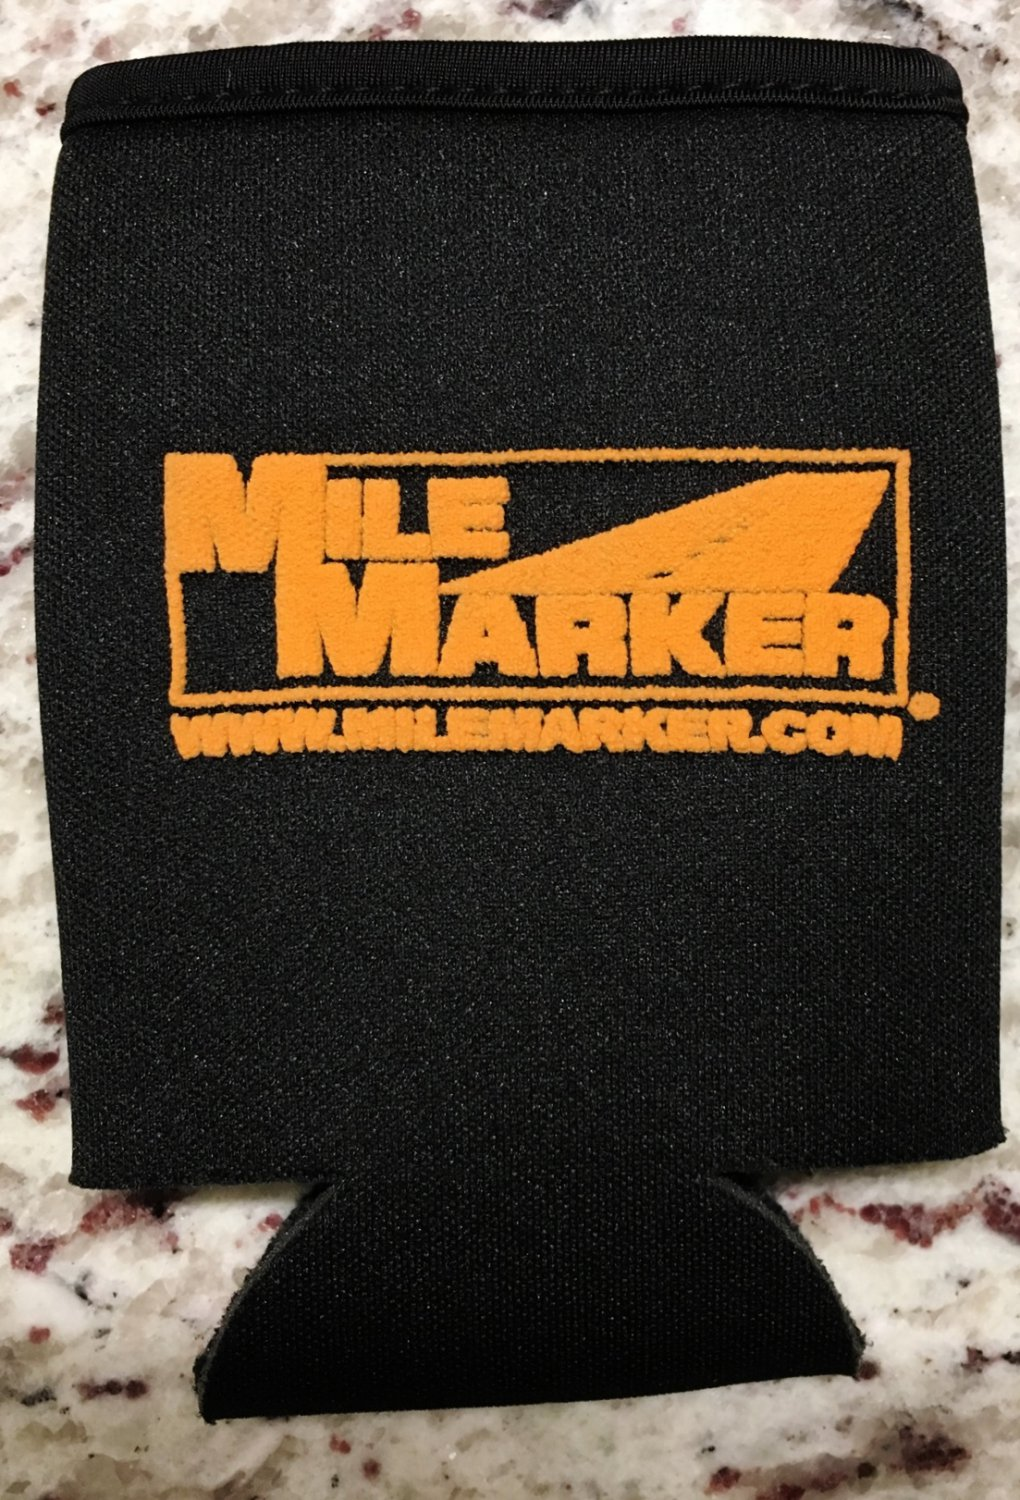 Mile Marker Coozie Koozie Jeep Recovery Gear Accessories Racing Offroading 4x4 Decal